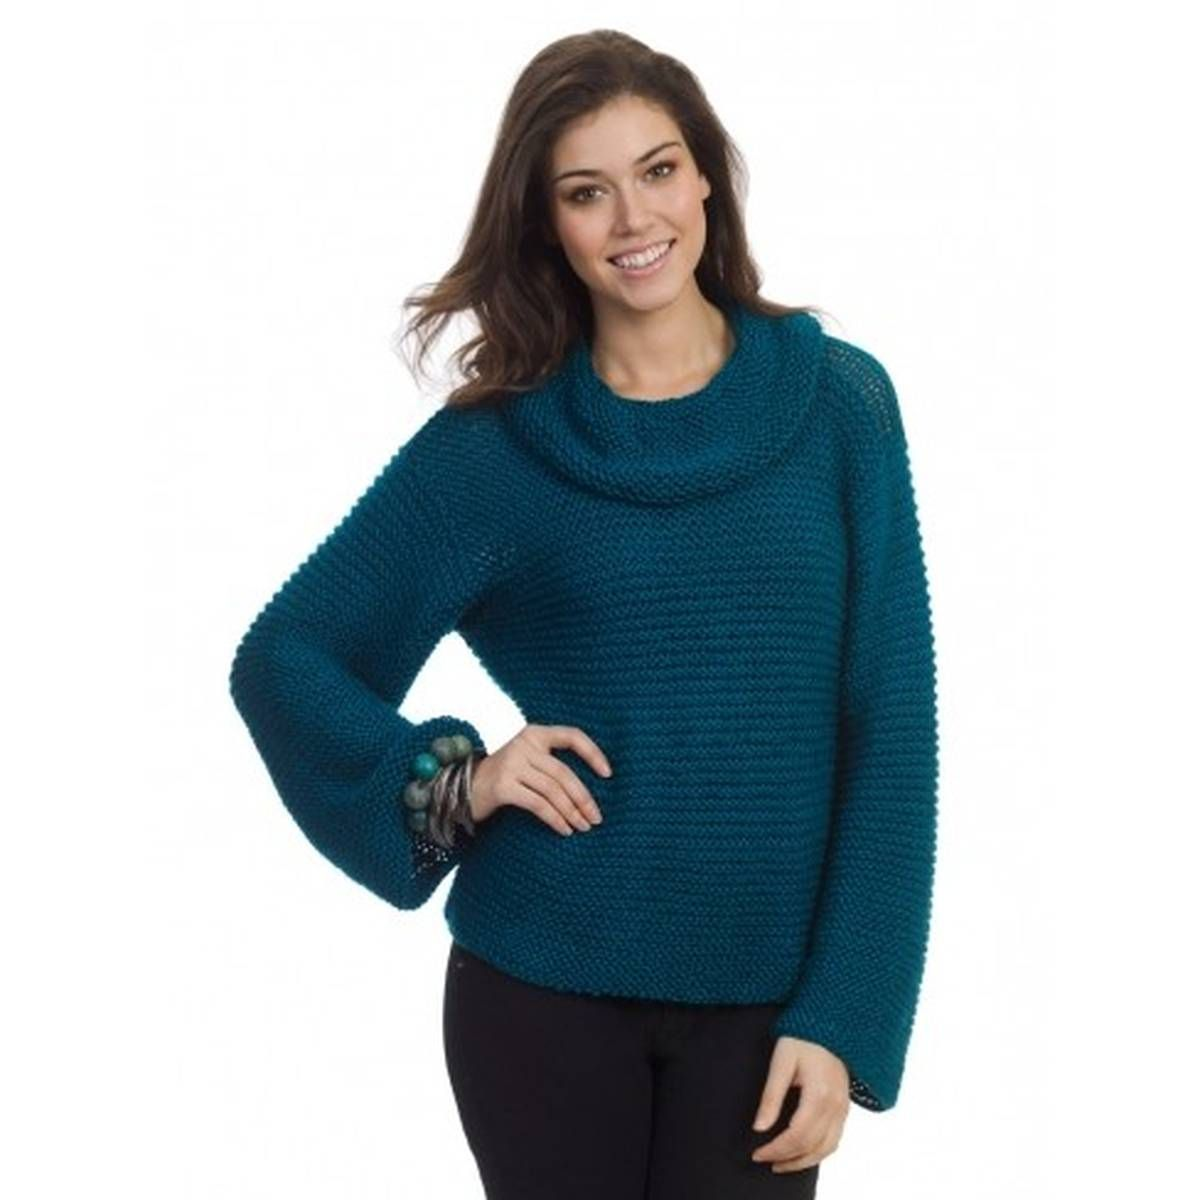 Easy Sweater Knitting Pattern Free Awesome Decorating Design